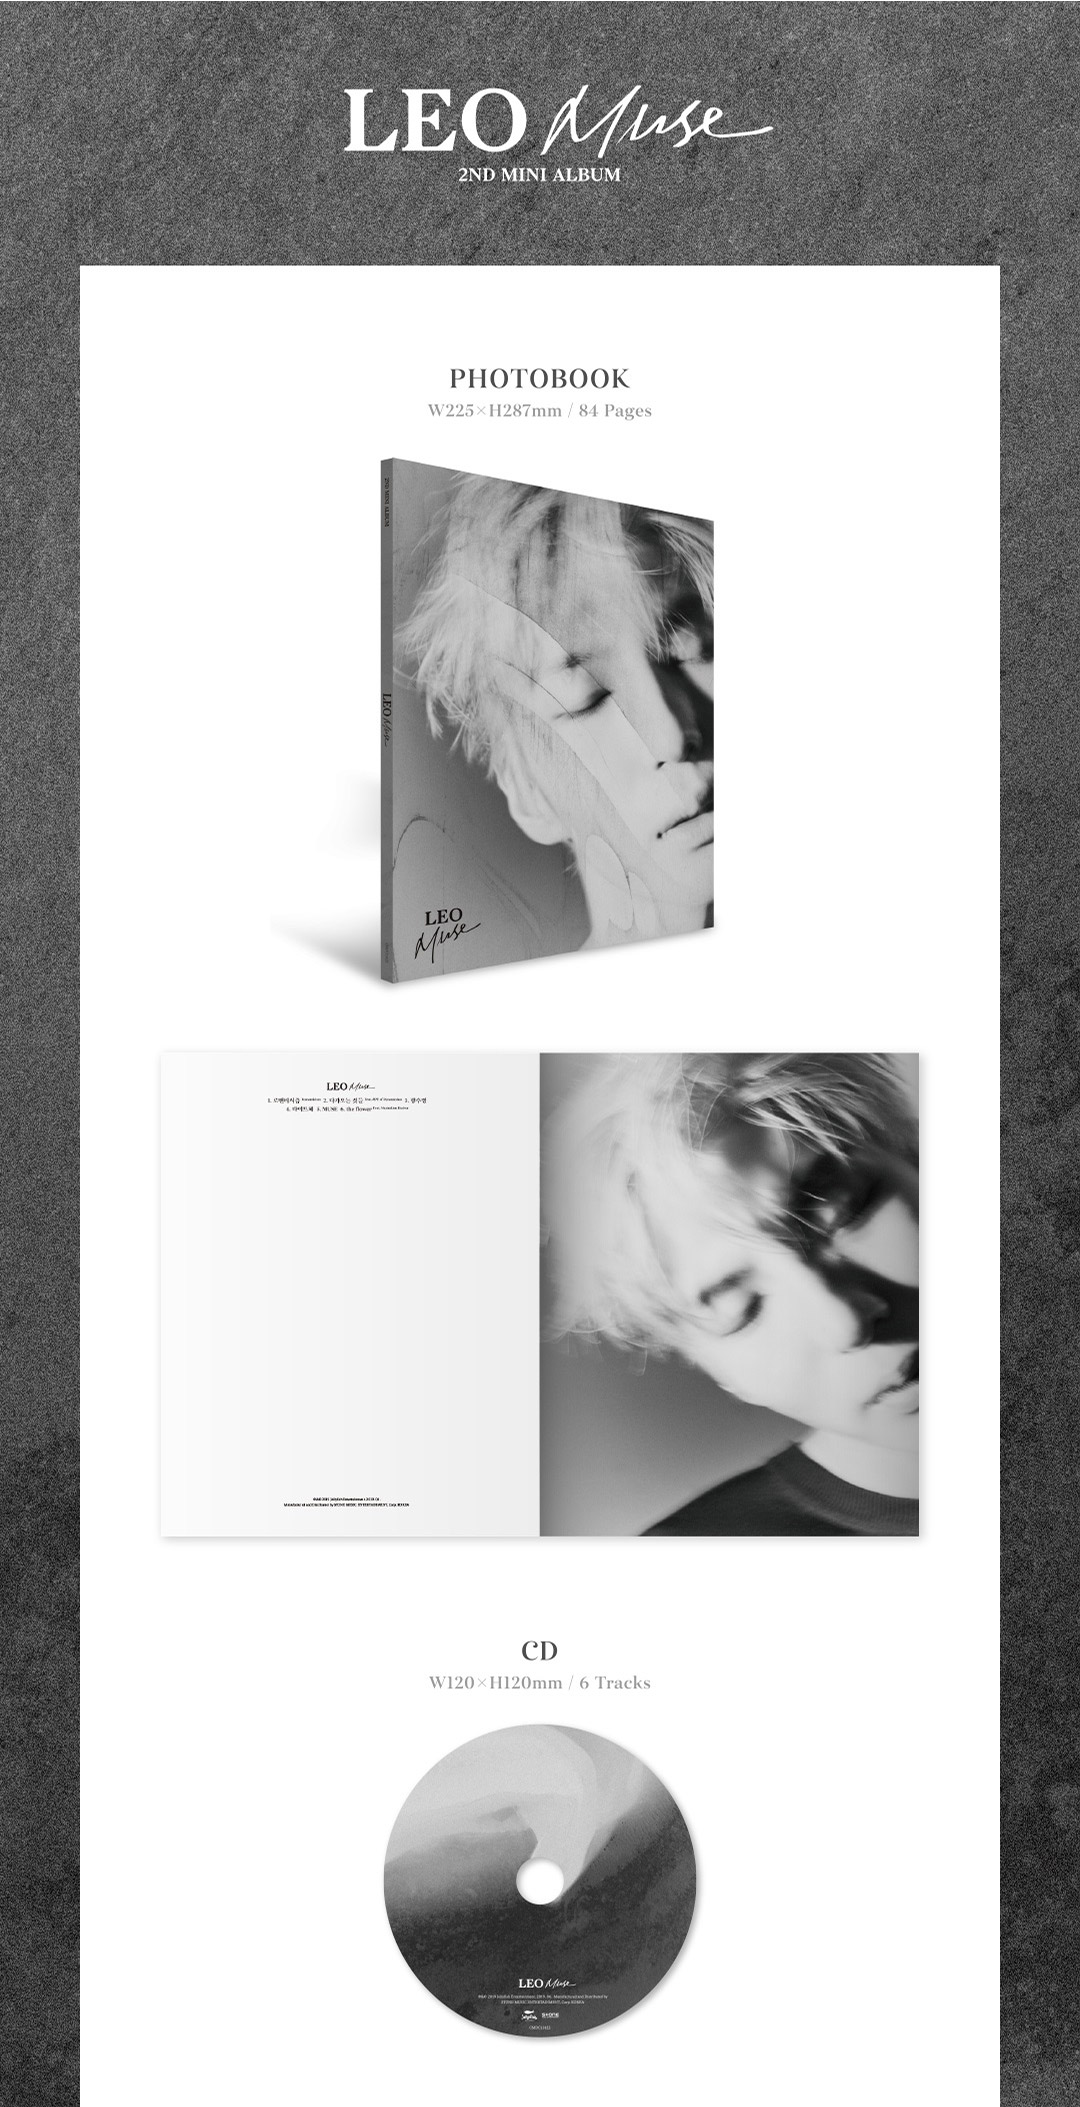 VIXX LEO 2nd Mini Album - MUSE CD + Poster